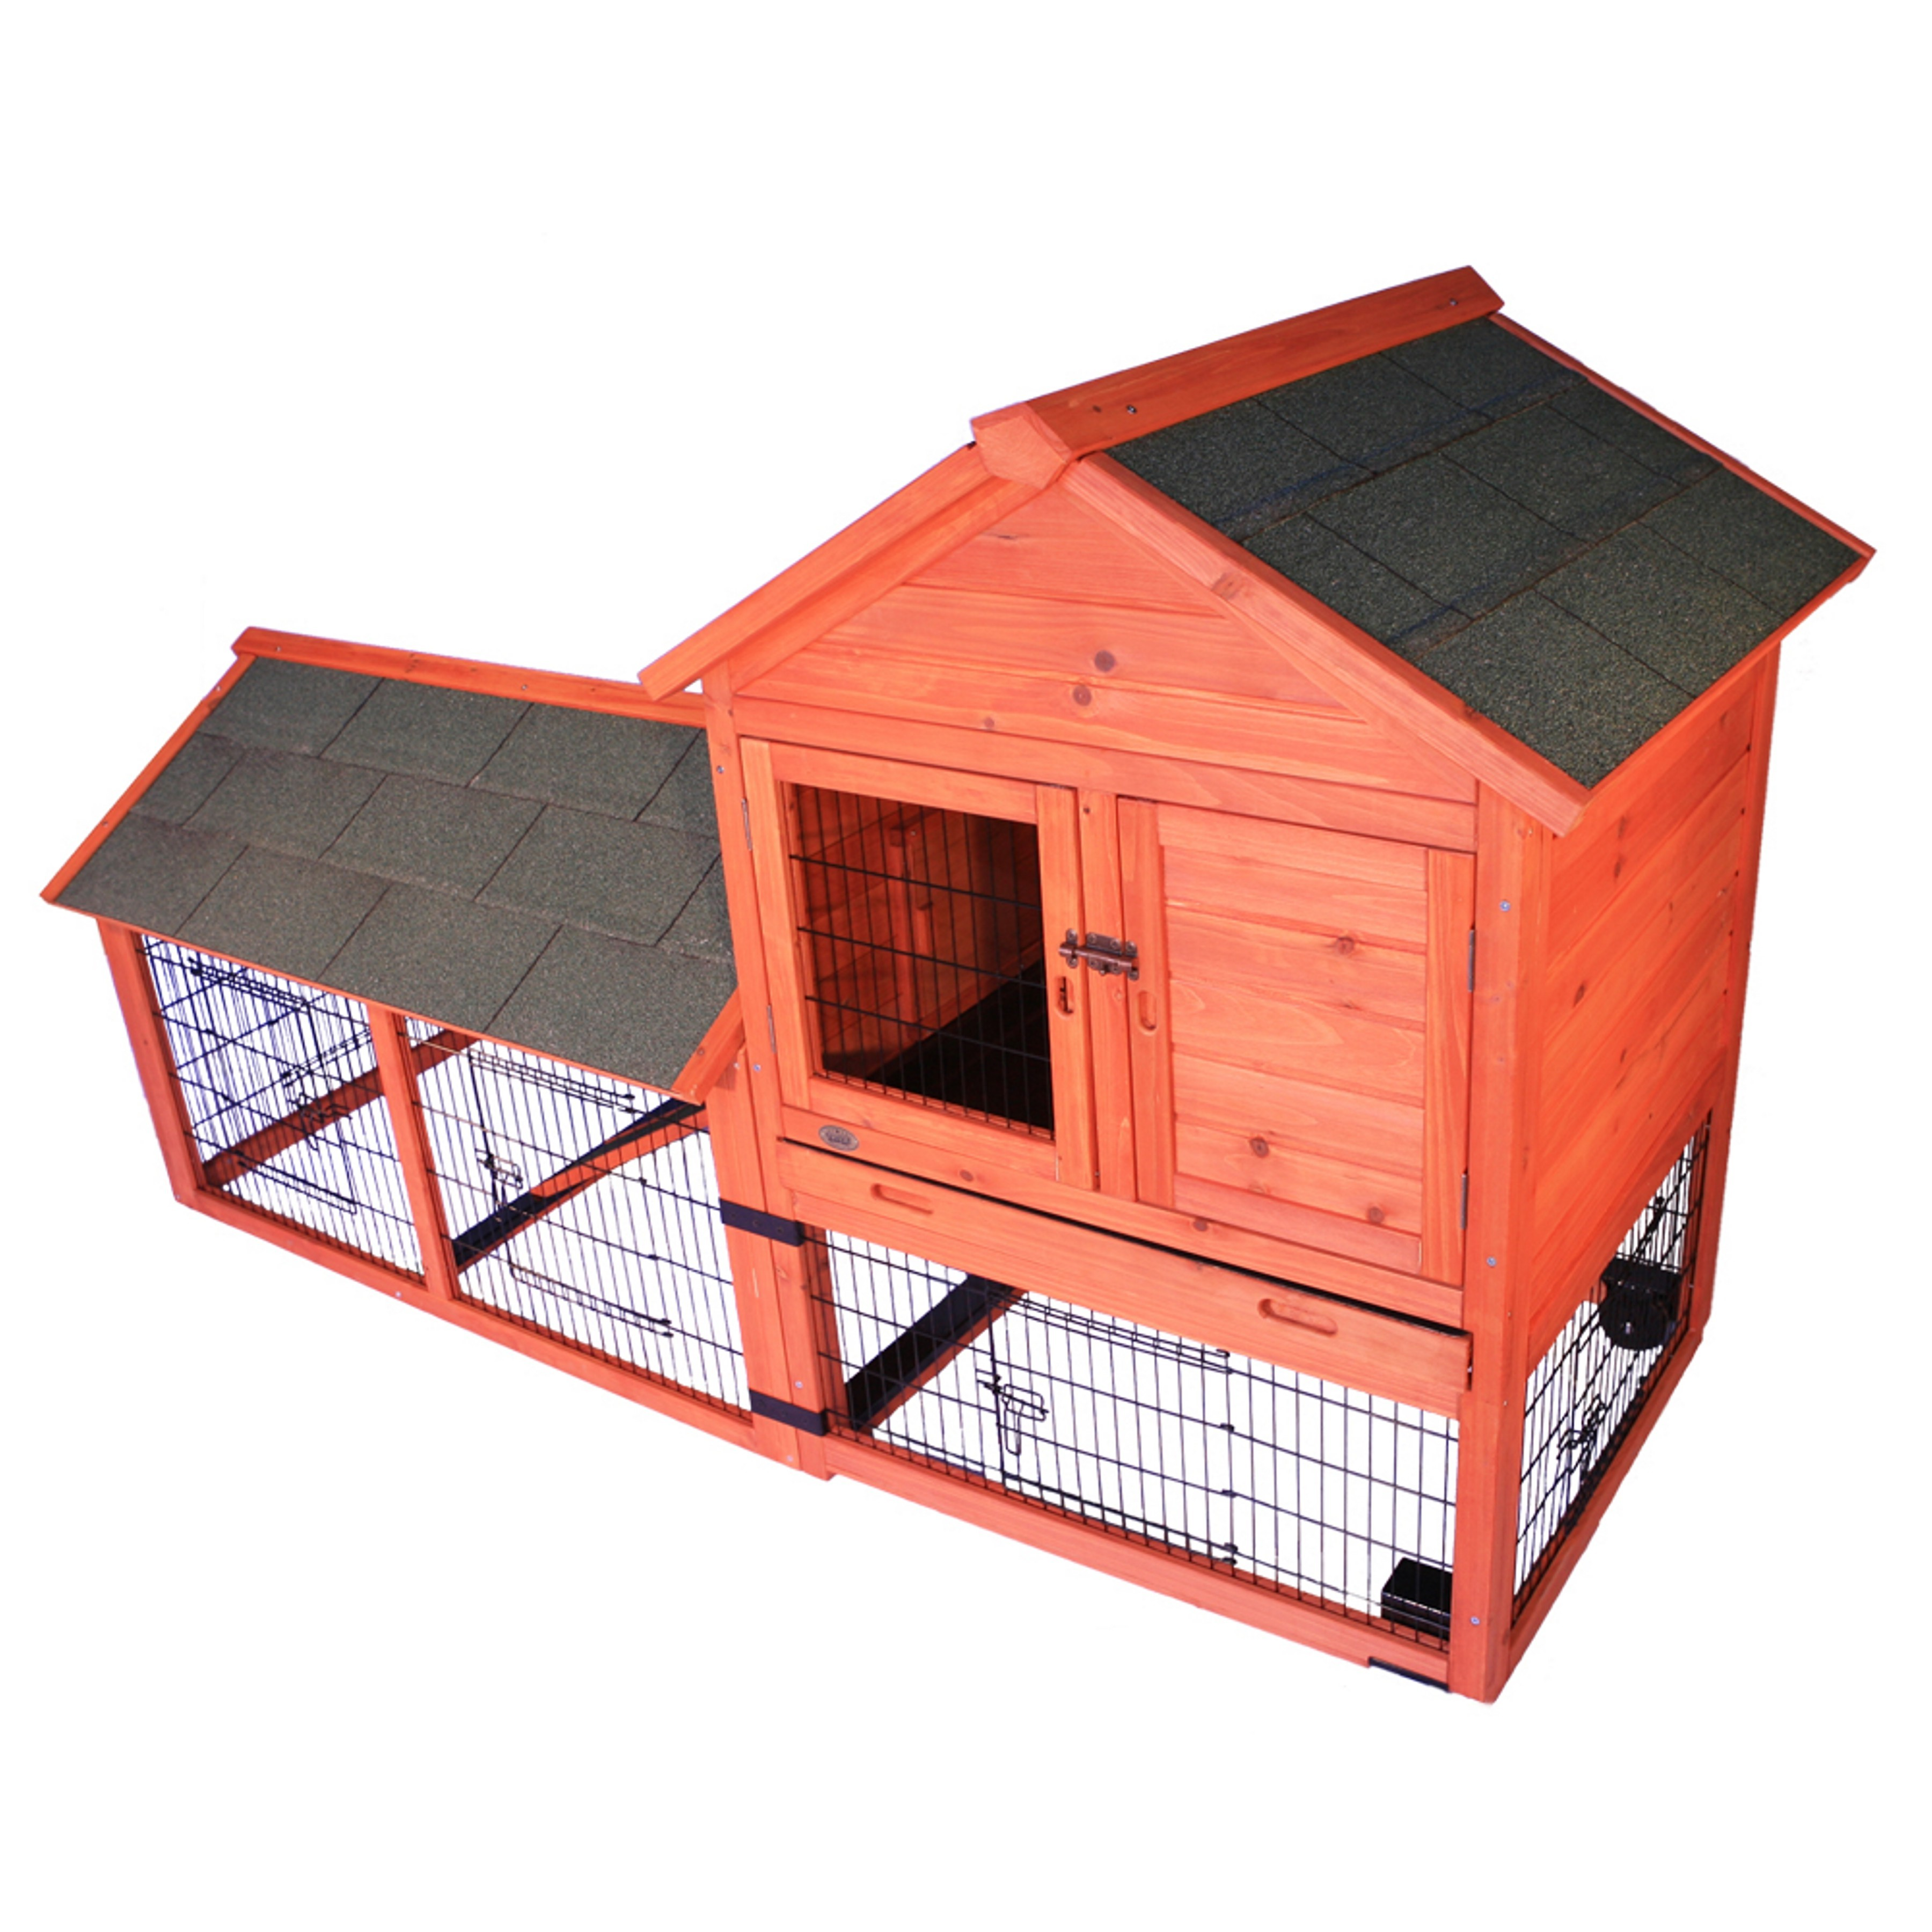 Trixie Pet Rabbit Hutch with Outdoor Run and Wheels